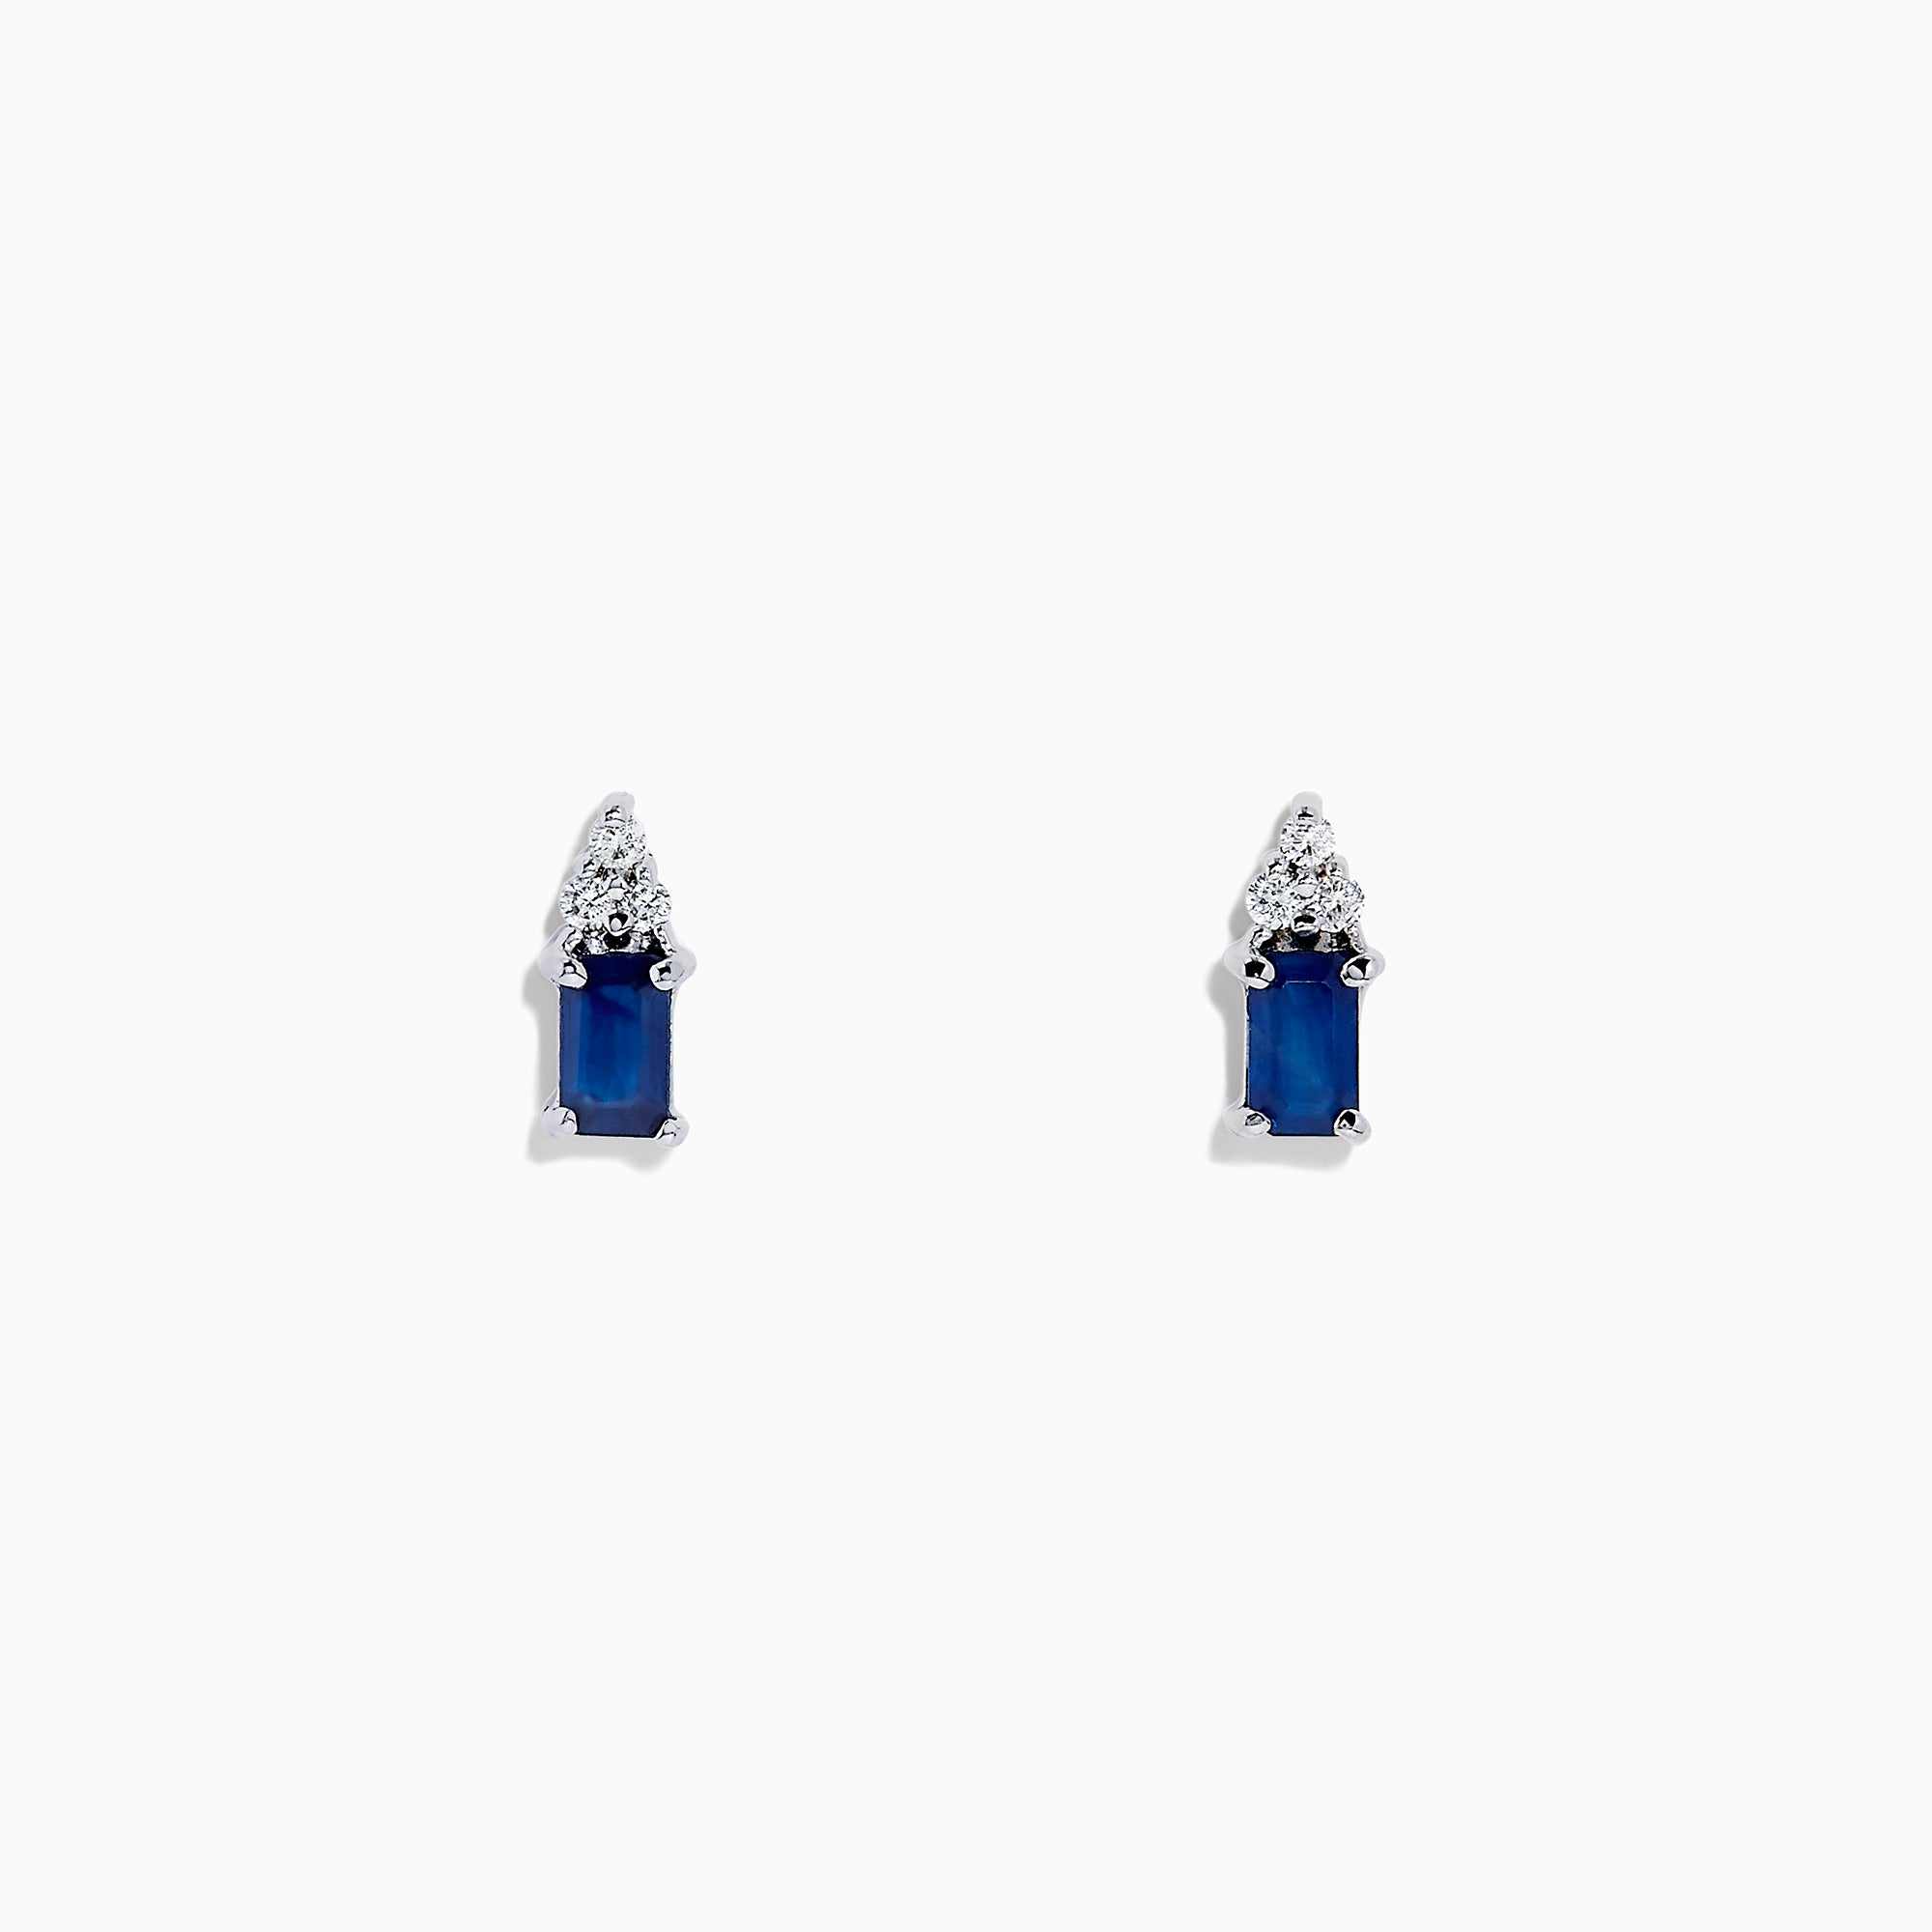 Effy 14K White Gold Sapphire and Diamond Earrings, 0.85 TCW